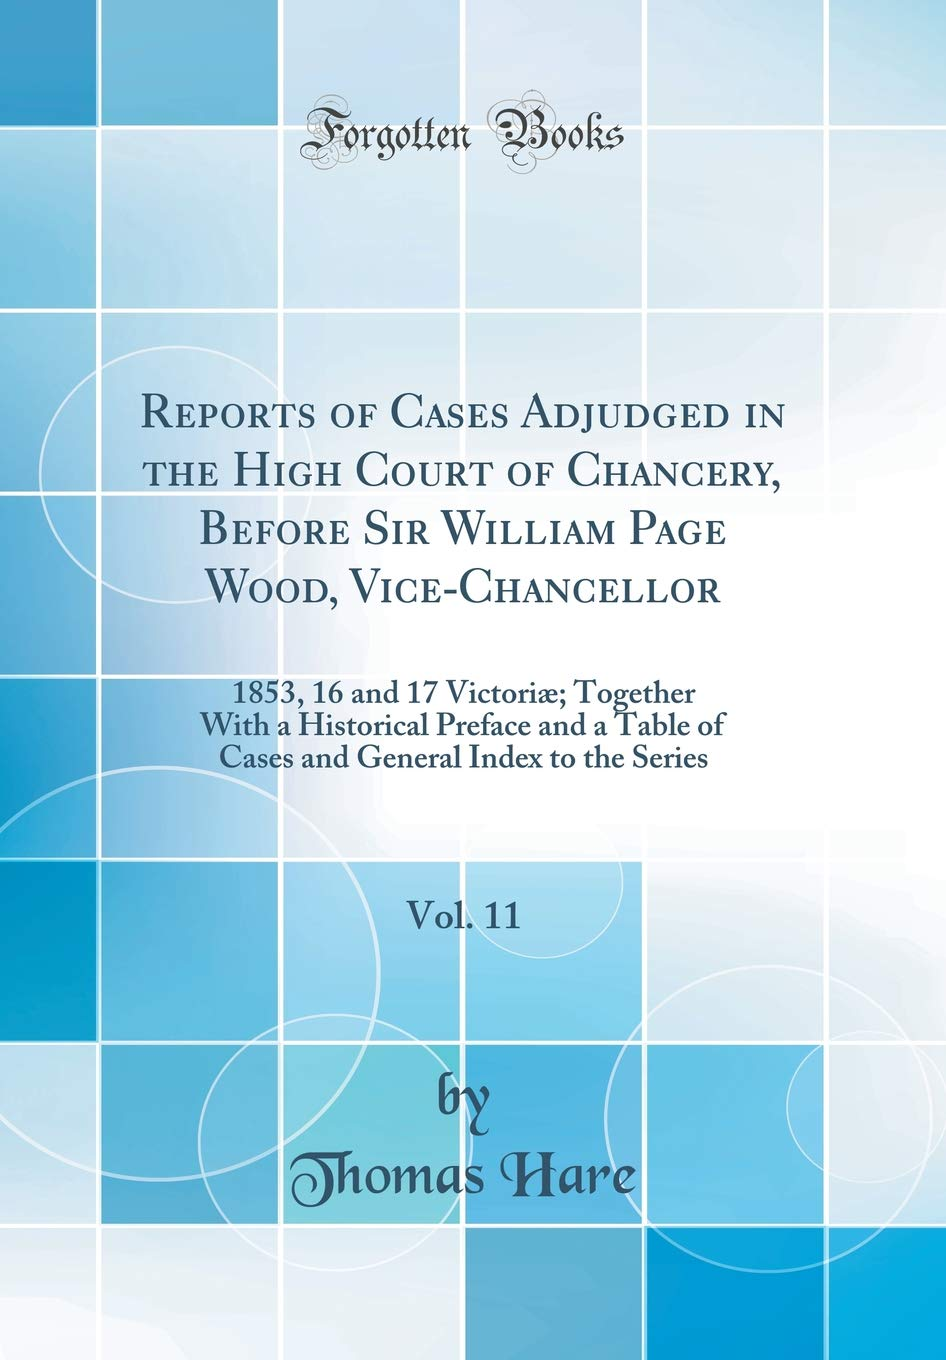 Reports of Cases Adjudged in the High Court of Chancery, Before Sir William Page Wood, Vice-Chancellor, Vol. 11: 1853, 16 and 17 Victoriæ; Together ... General Index to the Series (Classic Reprint) pdf epub